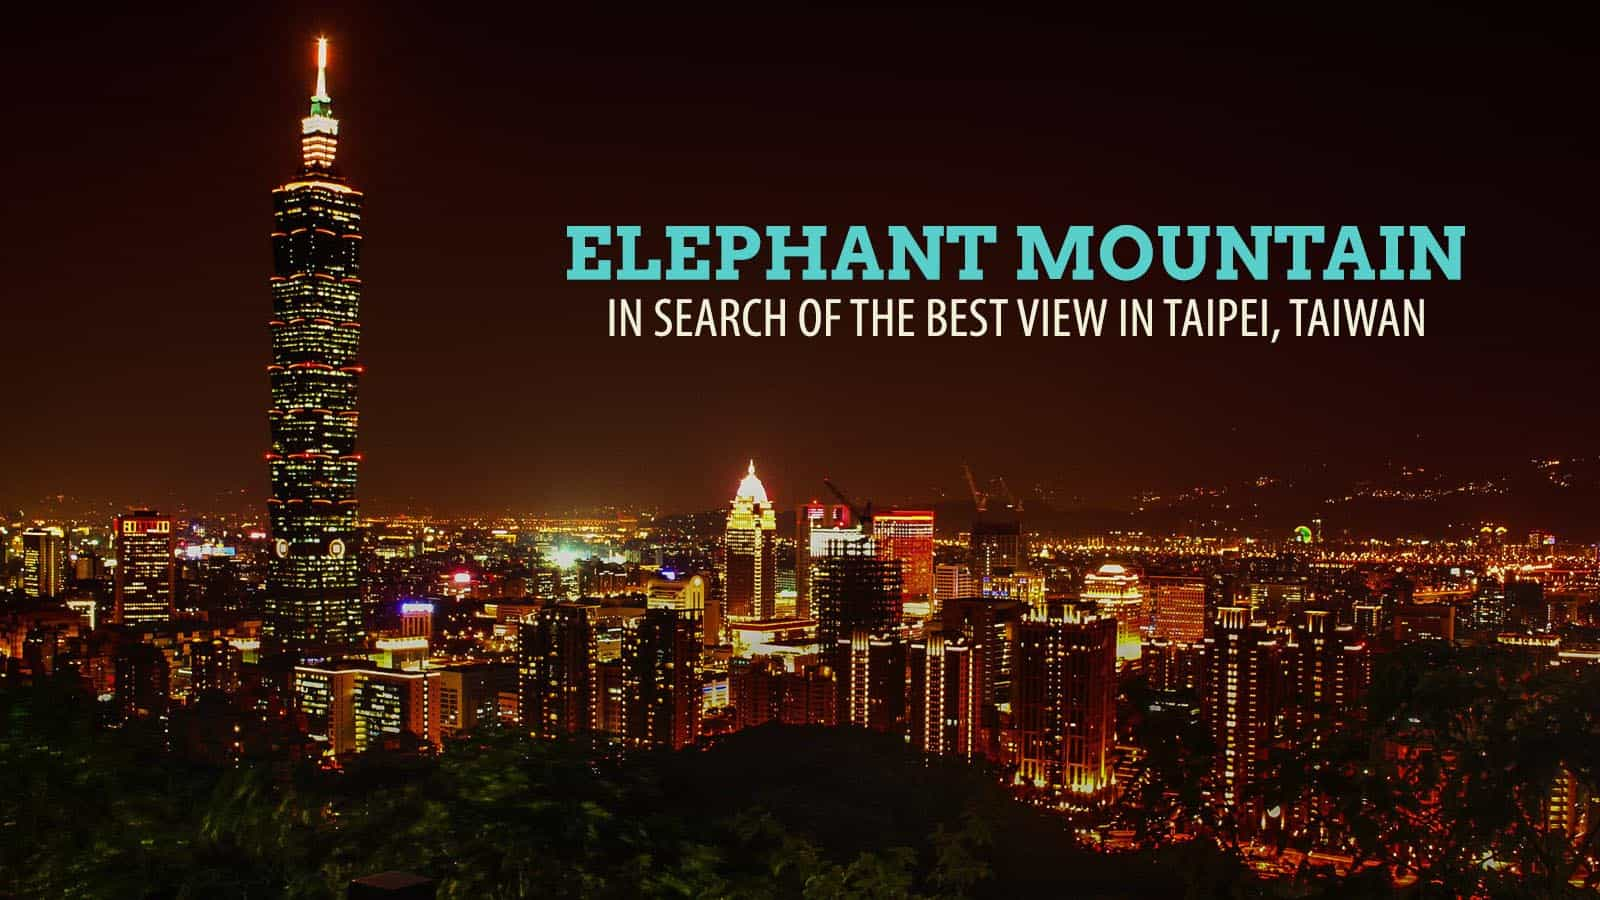 Elephant Mountain: In Search of the Best View in Taipei, Taiwan